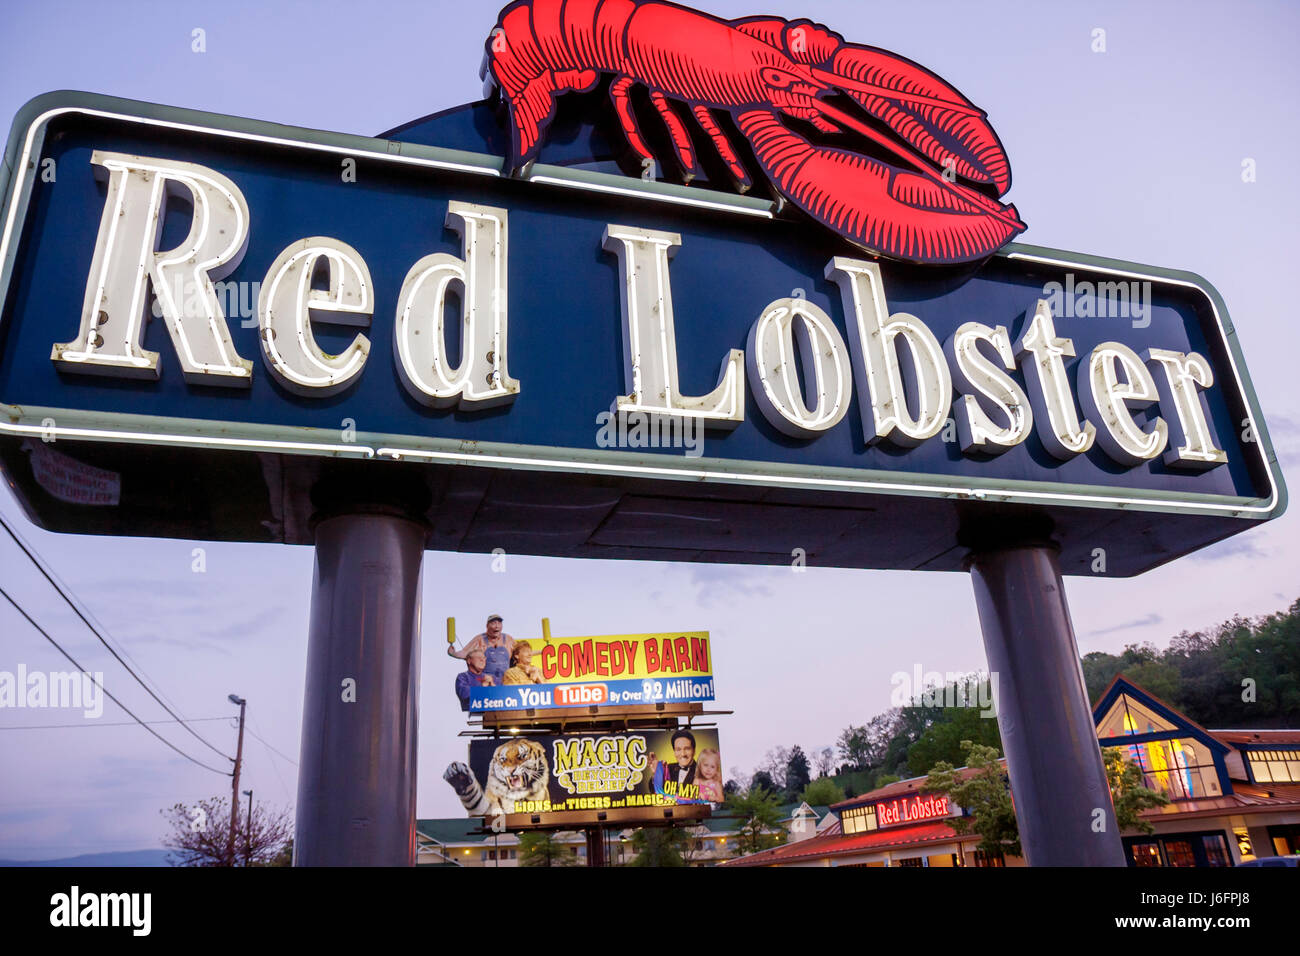 Tennessee Sevierville Red Lobster Restaurant neon sign billboard dusk exterior business chain advertising marketing - Stock Image